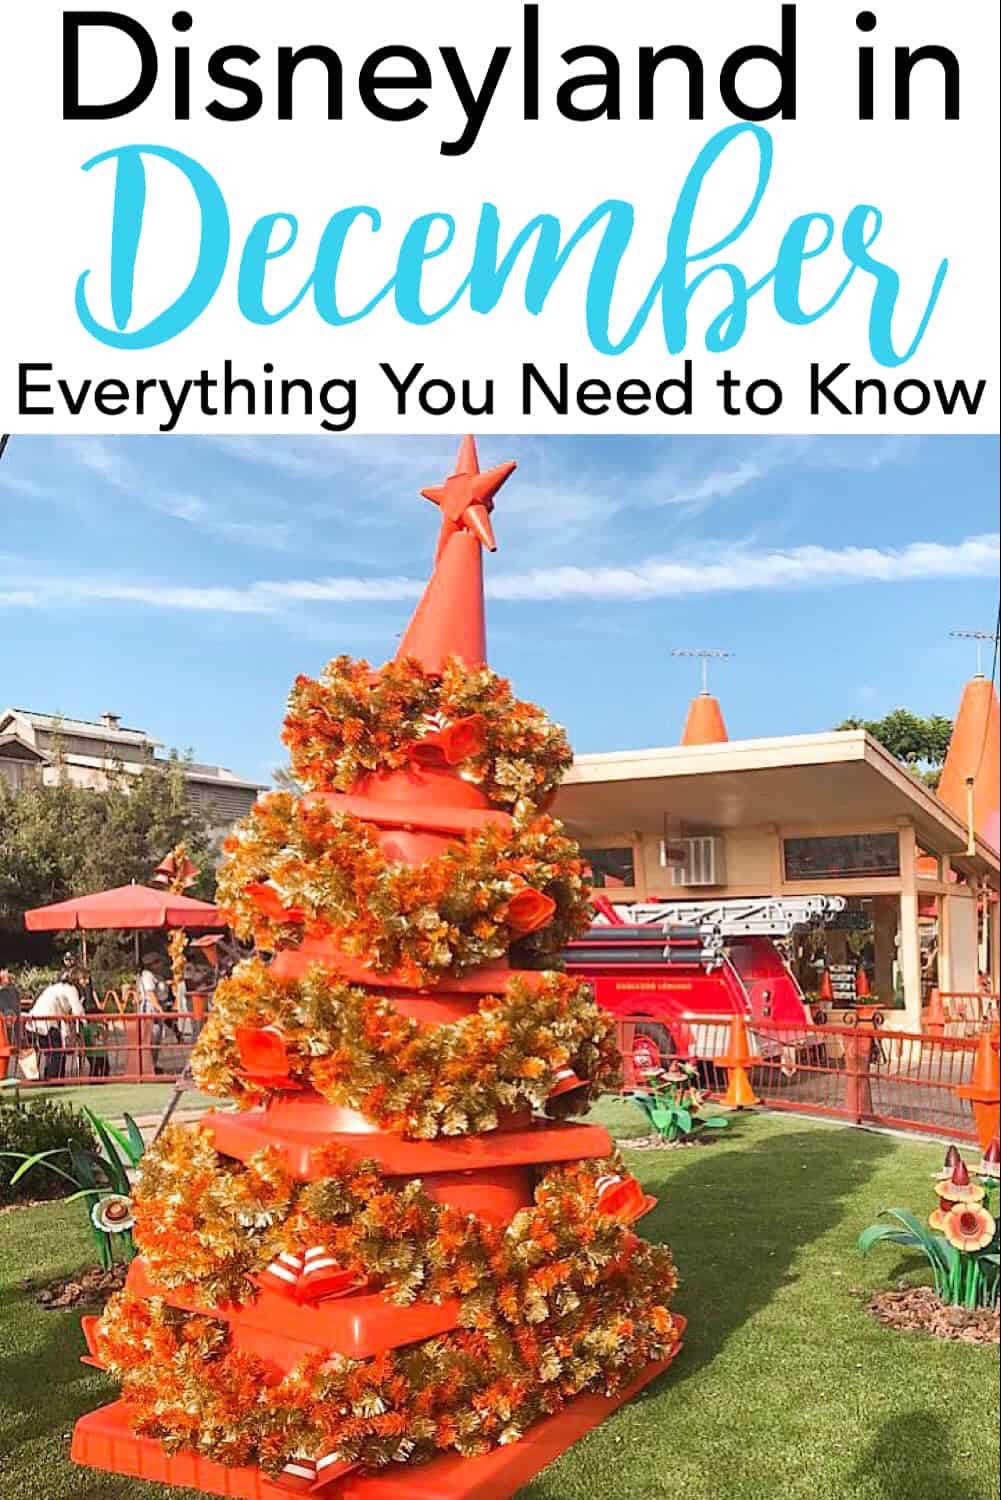 Disneyland in December Everything You Need to Know